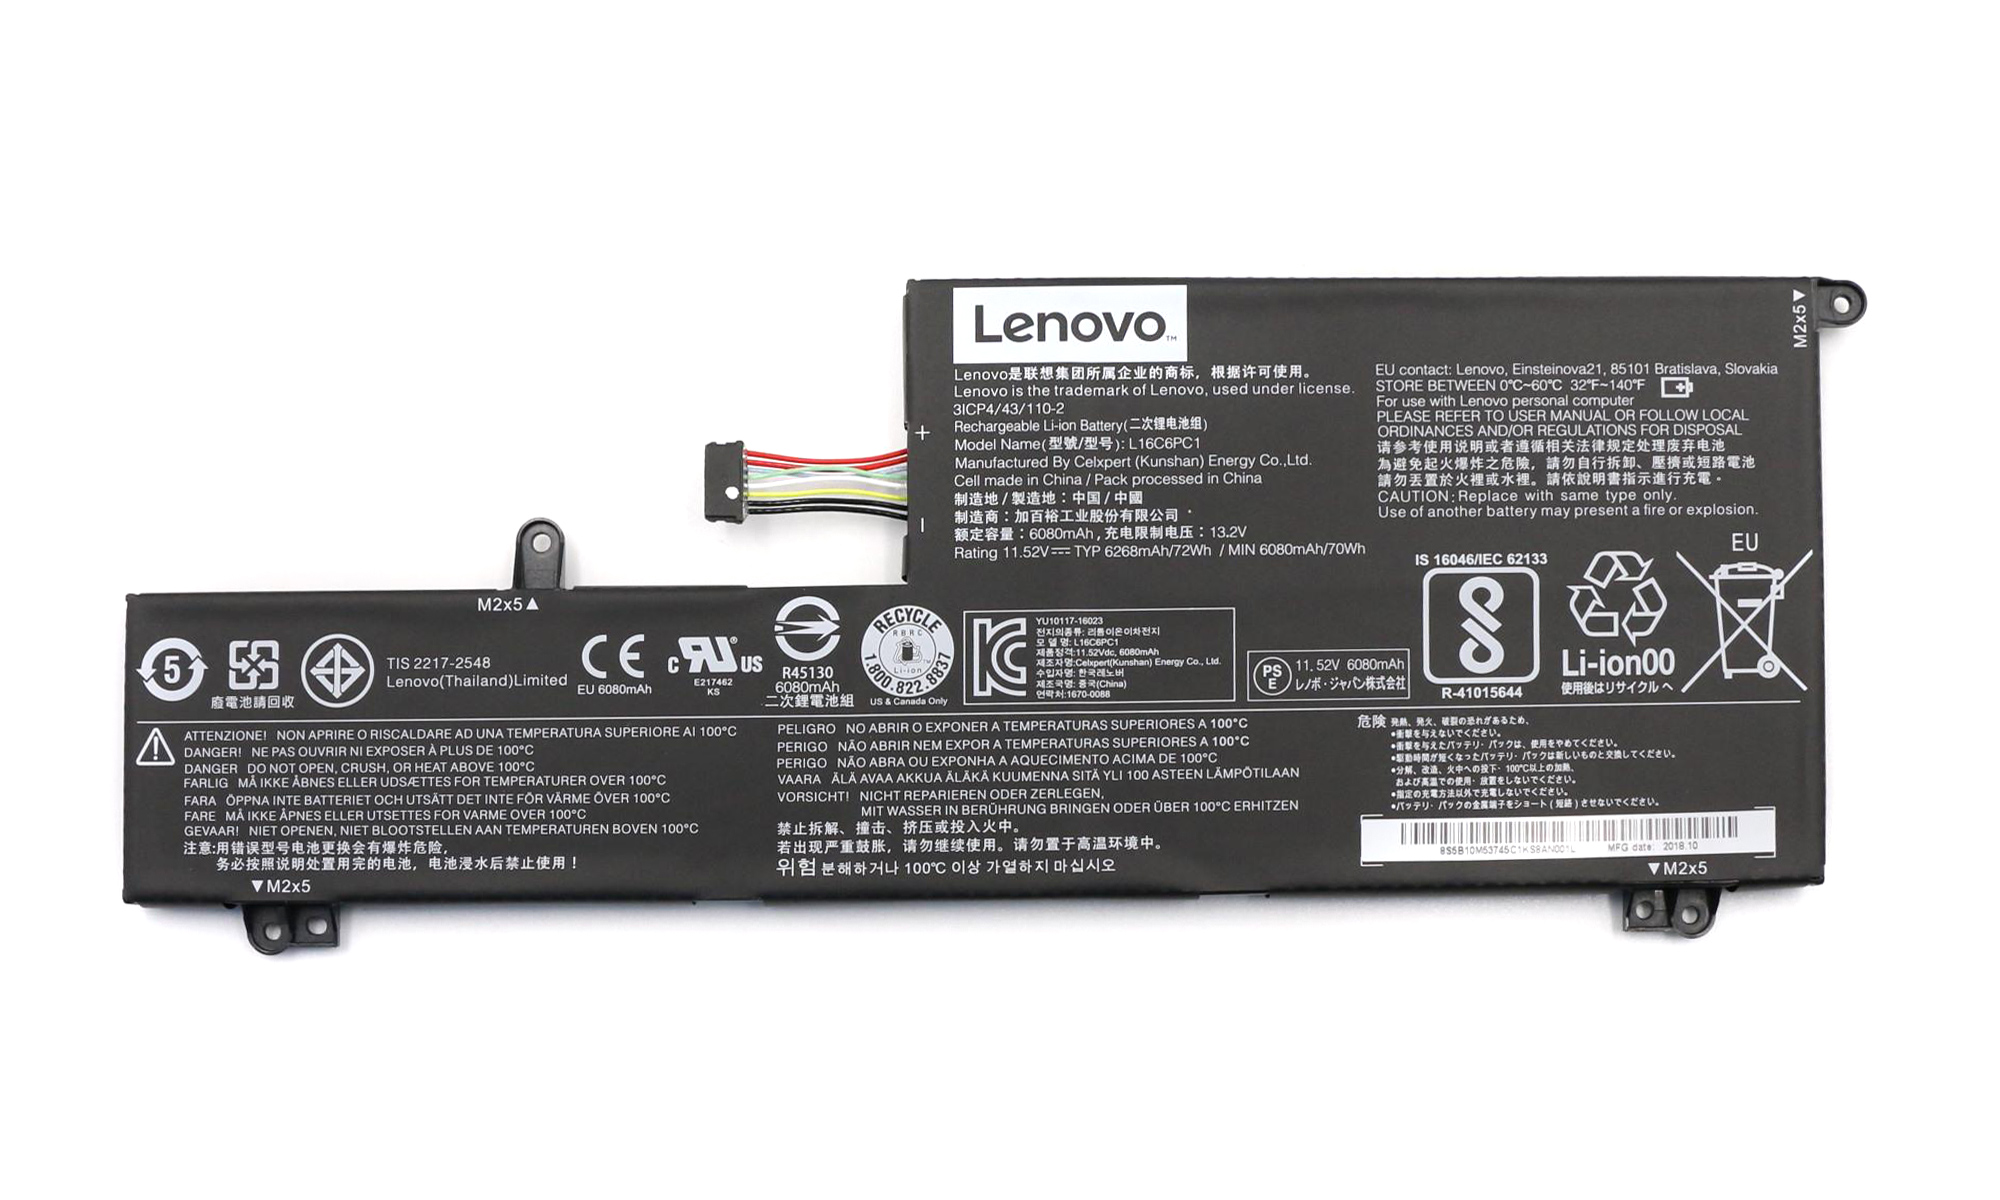 Baterie originala Lenovo IdeaPad Yoga 720-15IKB, 11.52 V, 6268 mAh, 72 Wh, model L16C6PC1